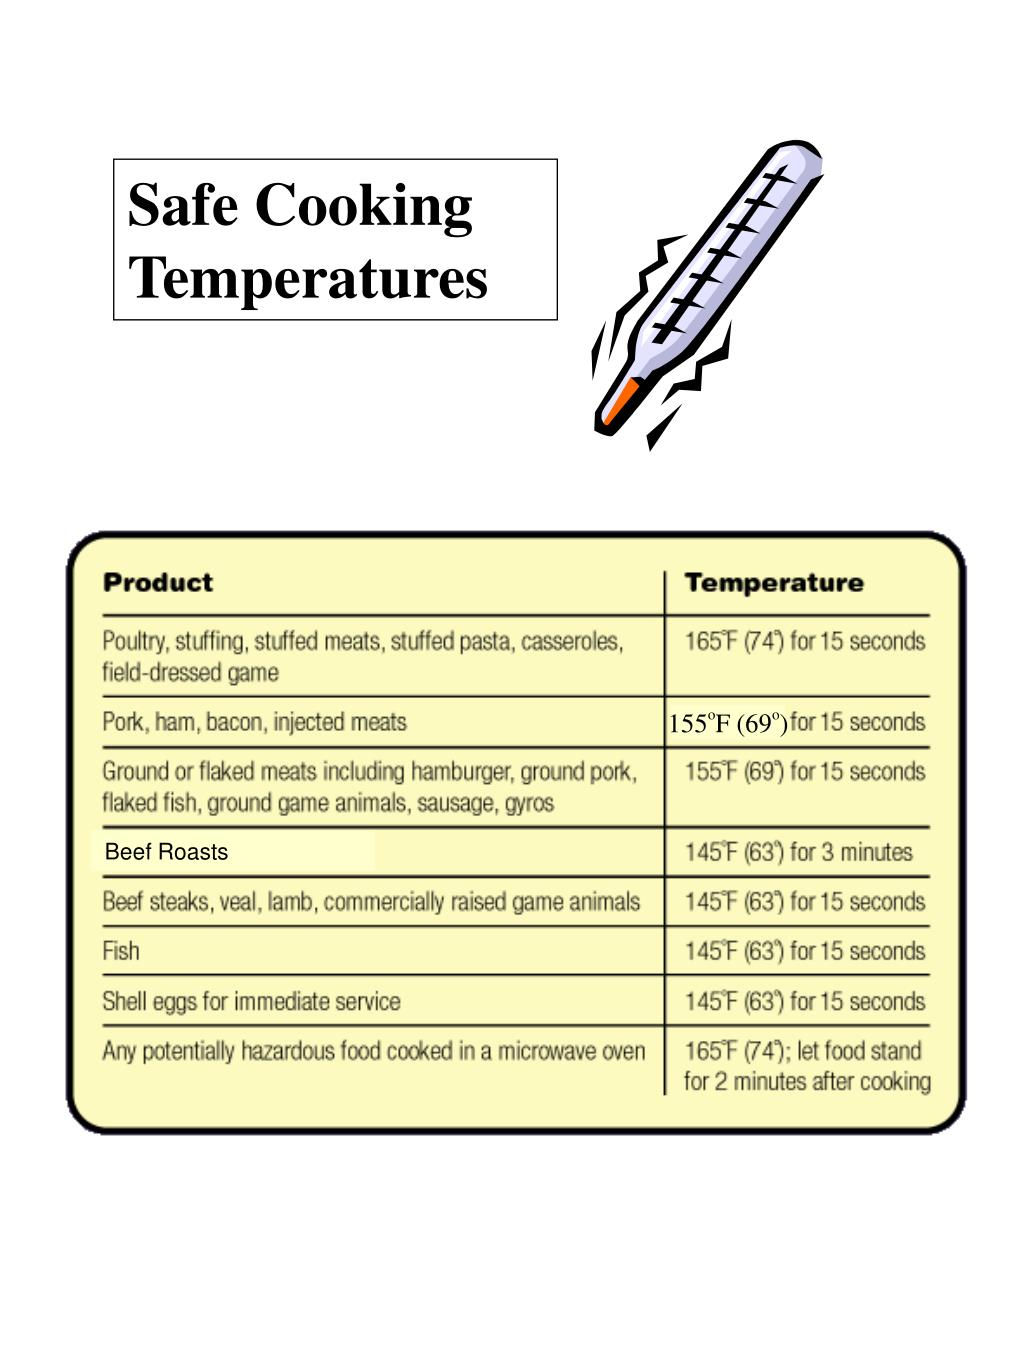 Safe Cooking Temperatures